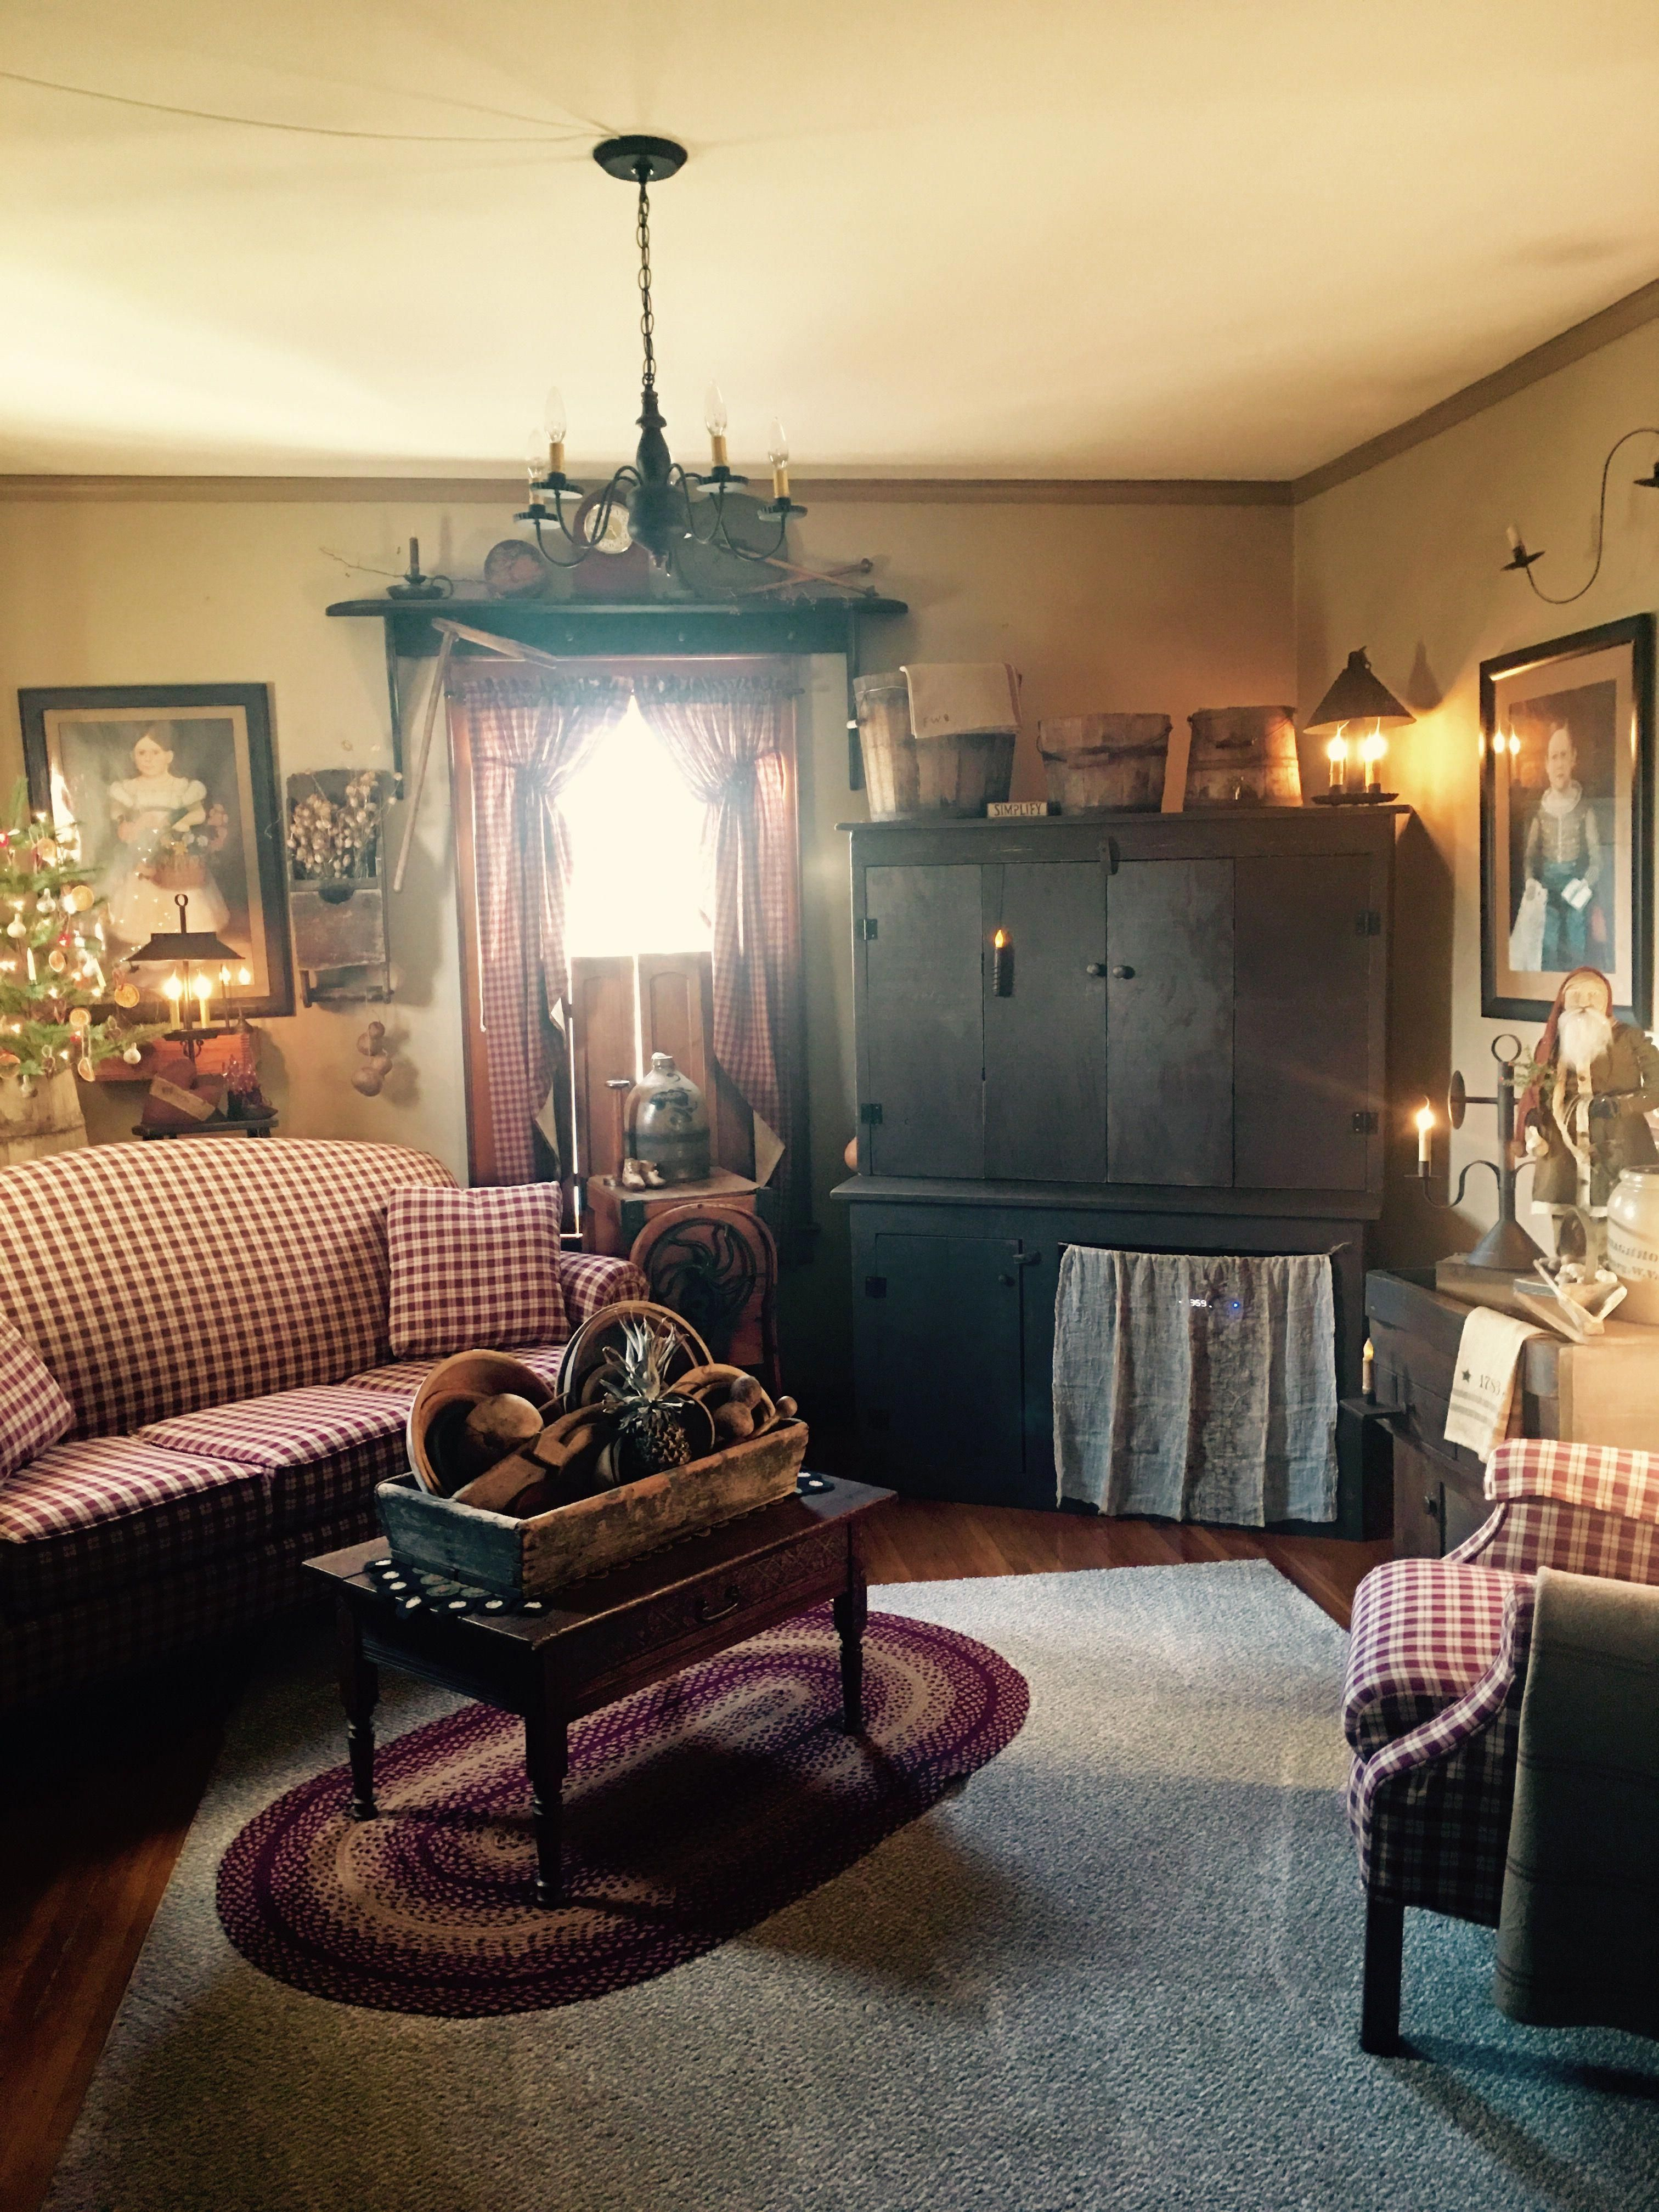 Primitive Country Living Room Decorating Ideas: Primitive Living Room #Primitivekitchen